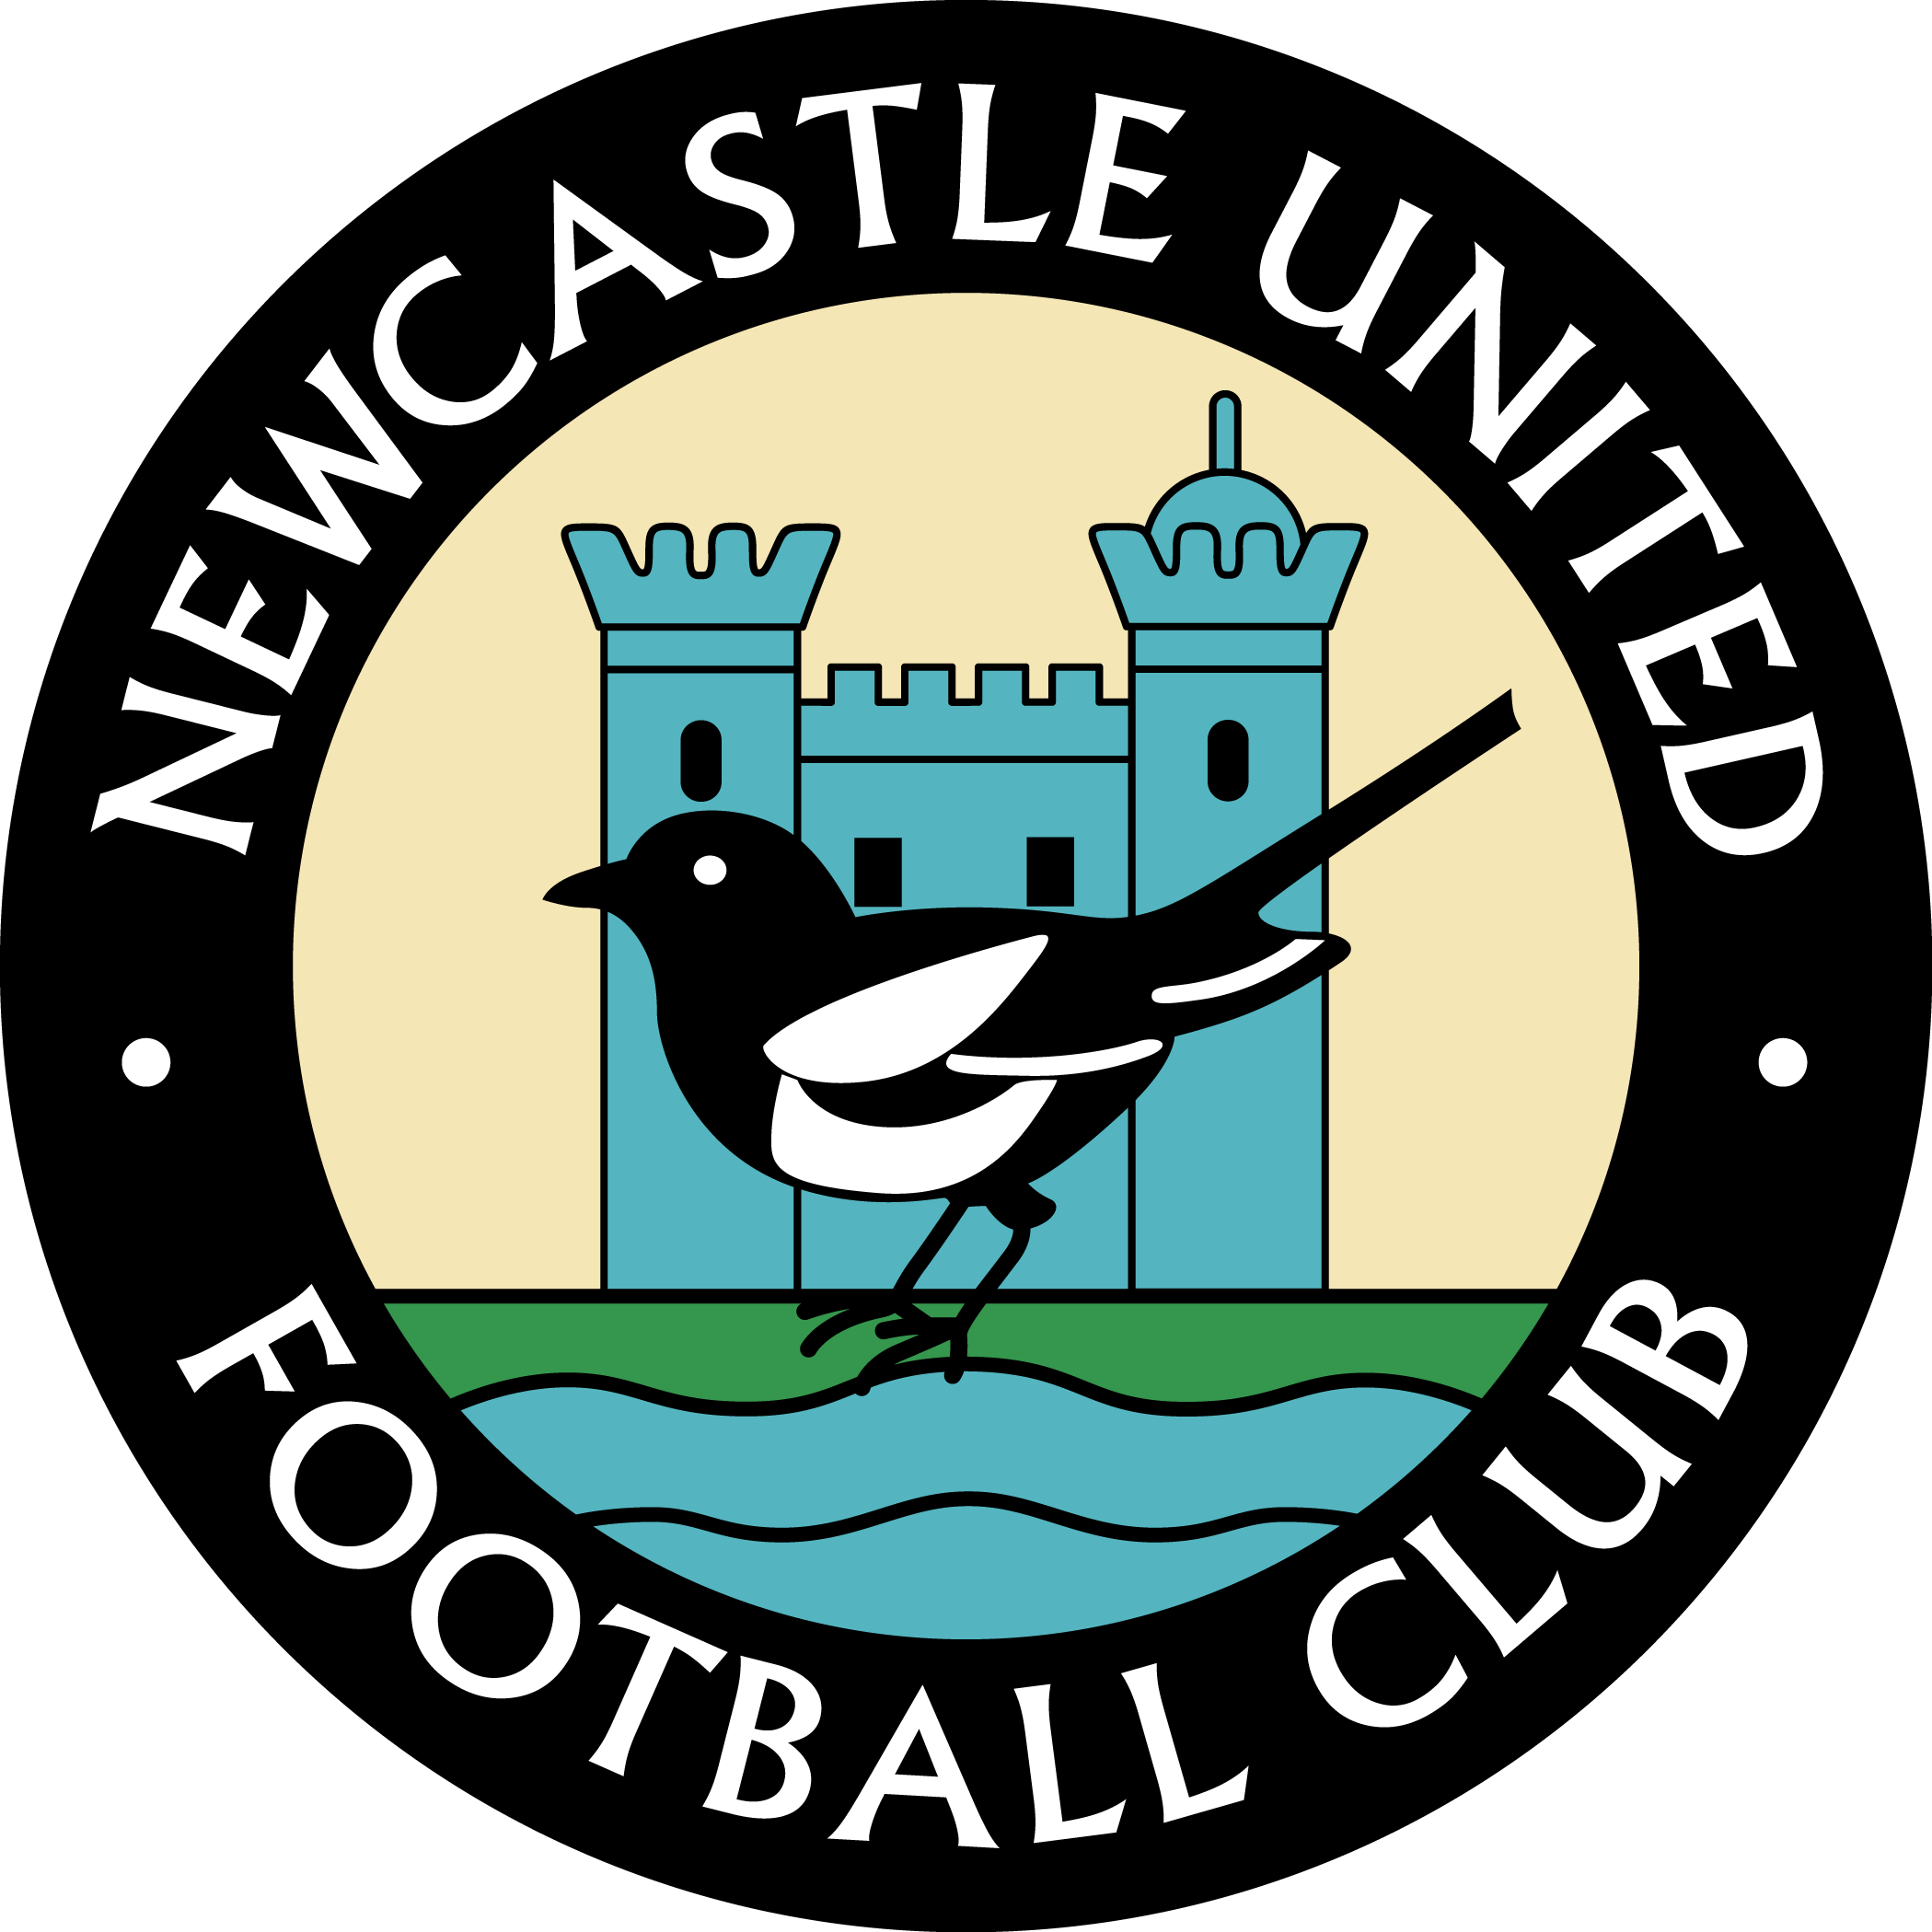 Football stitches and stripes clipart clipart royalty free stock Newcastle United | Soccer Logos / Crest | Pinterest | Newcastle ... clipart royalty free stock